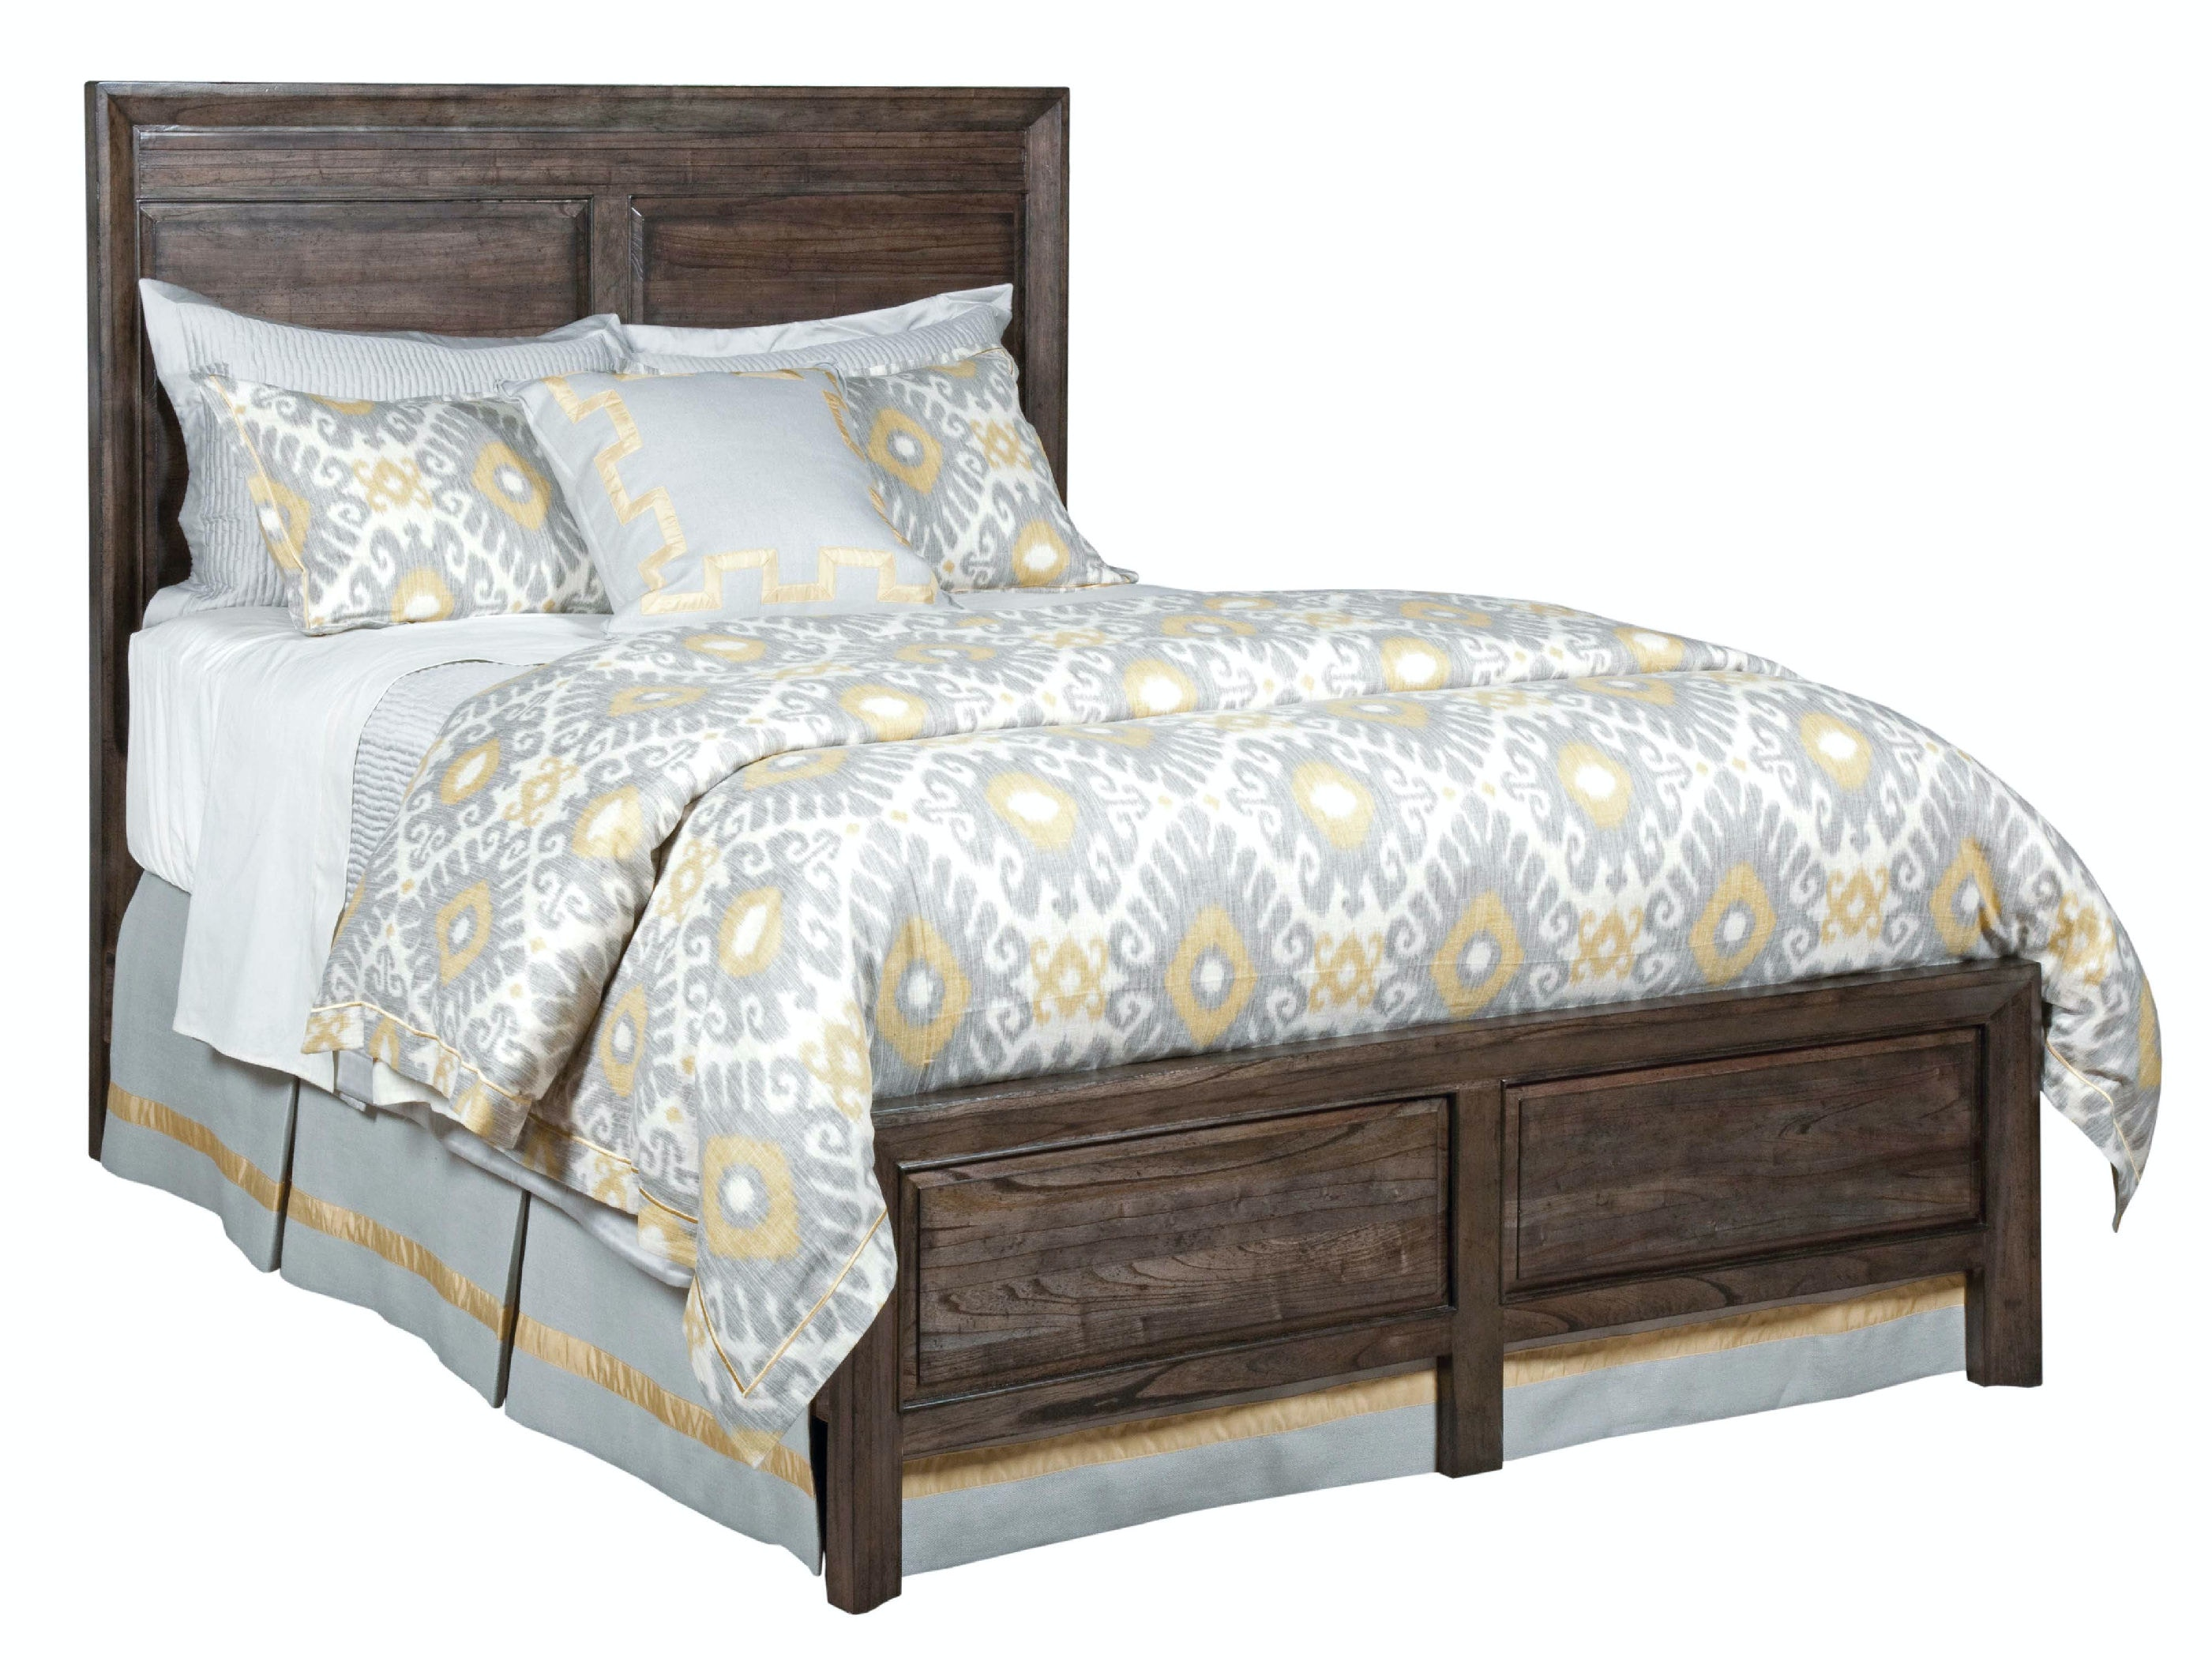 Montreat Panel Bed   KING KT:13771